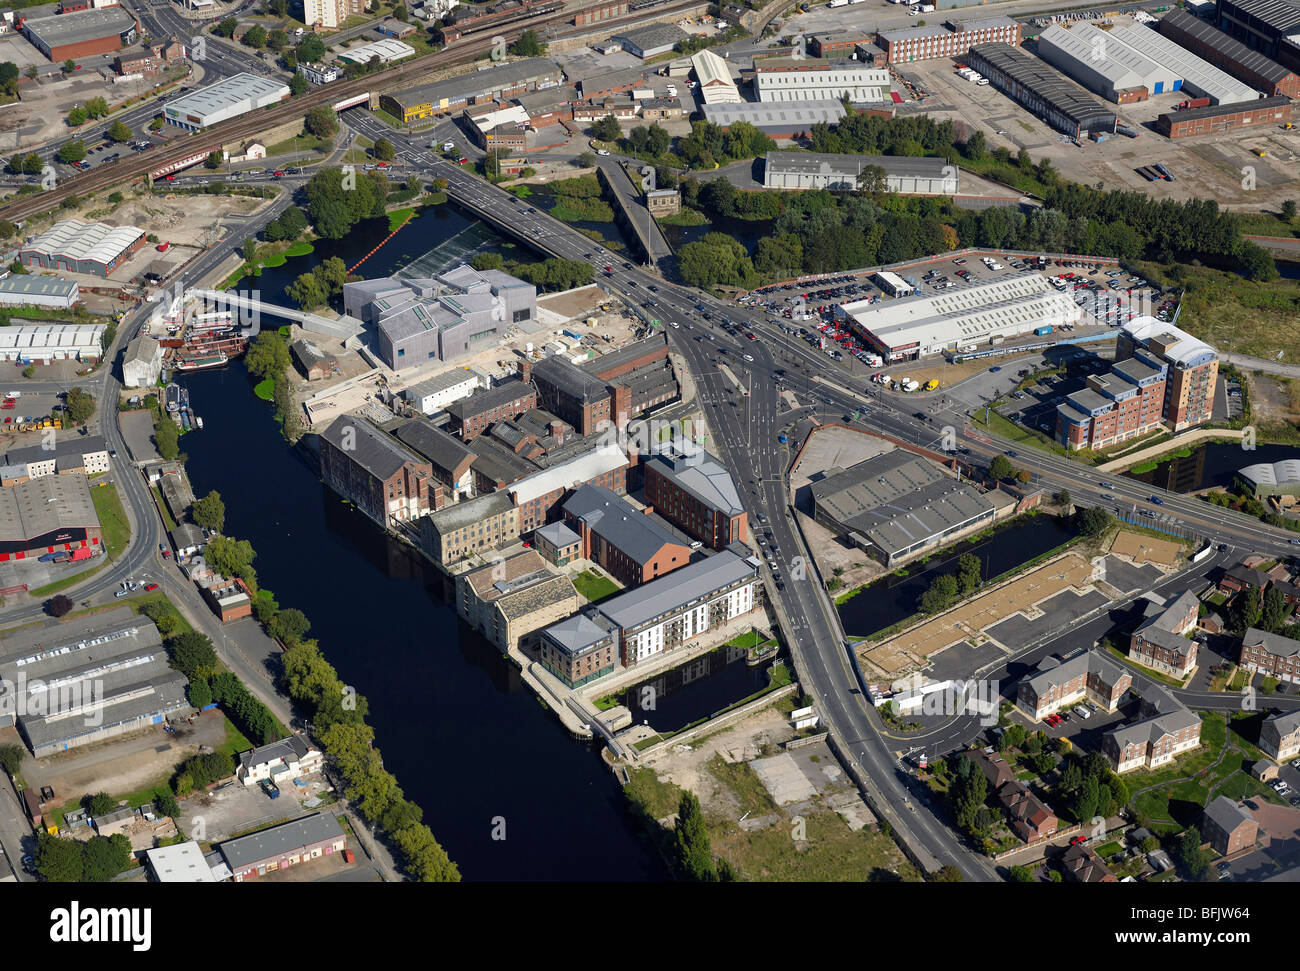 Waterfront development beside the River Calder, Wakefield, West Yorkshire, including the new Barbara Hepworth Gallery - Stock Image